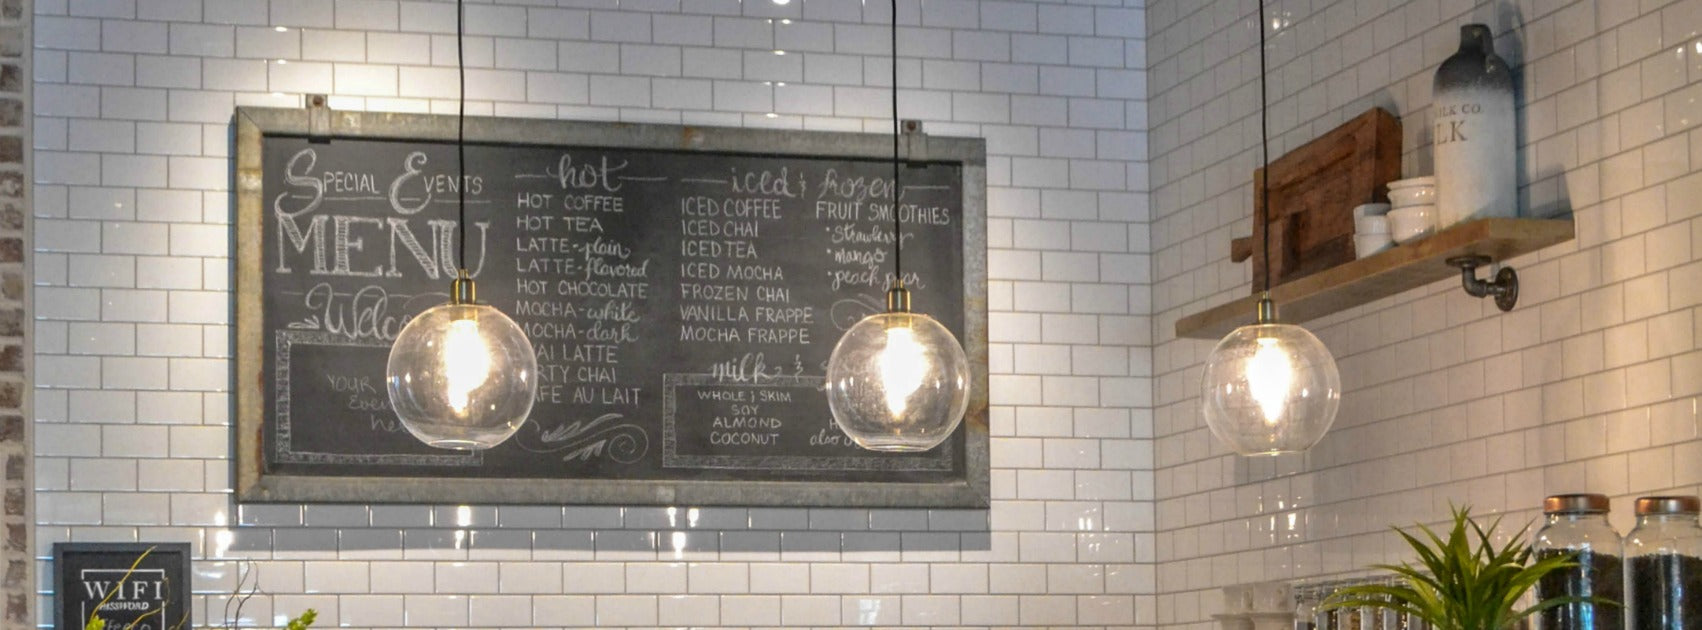 Coffee Shop Menu Boards